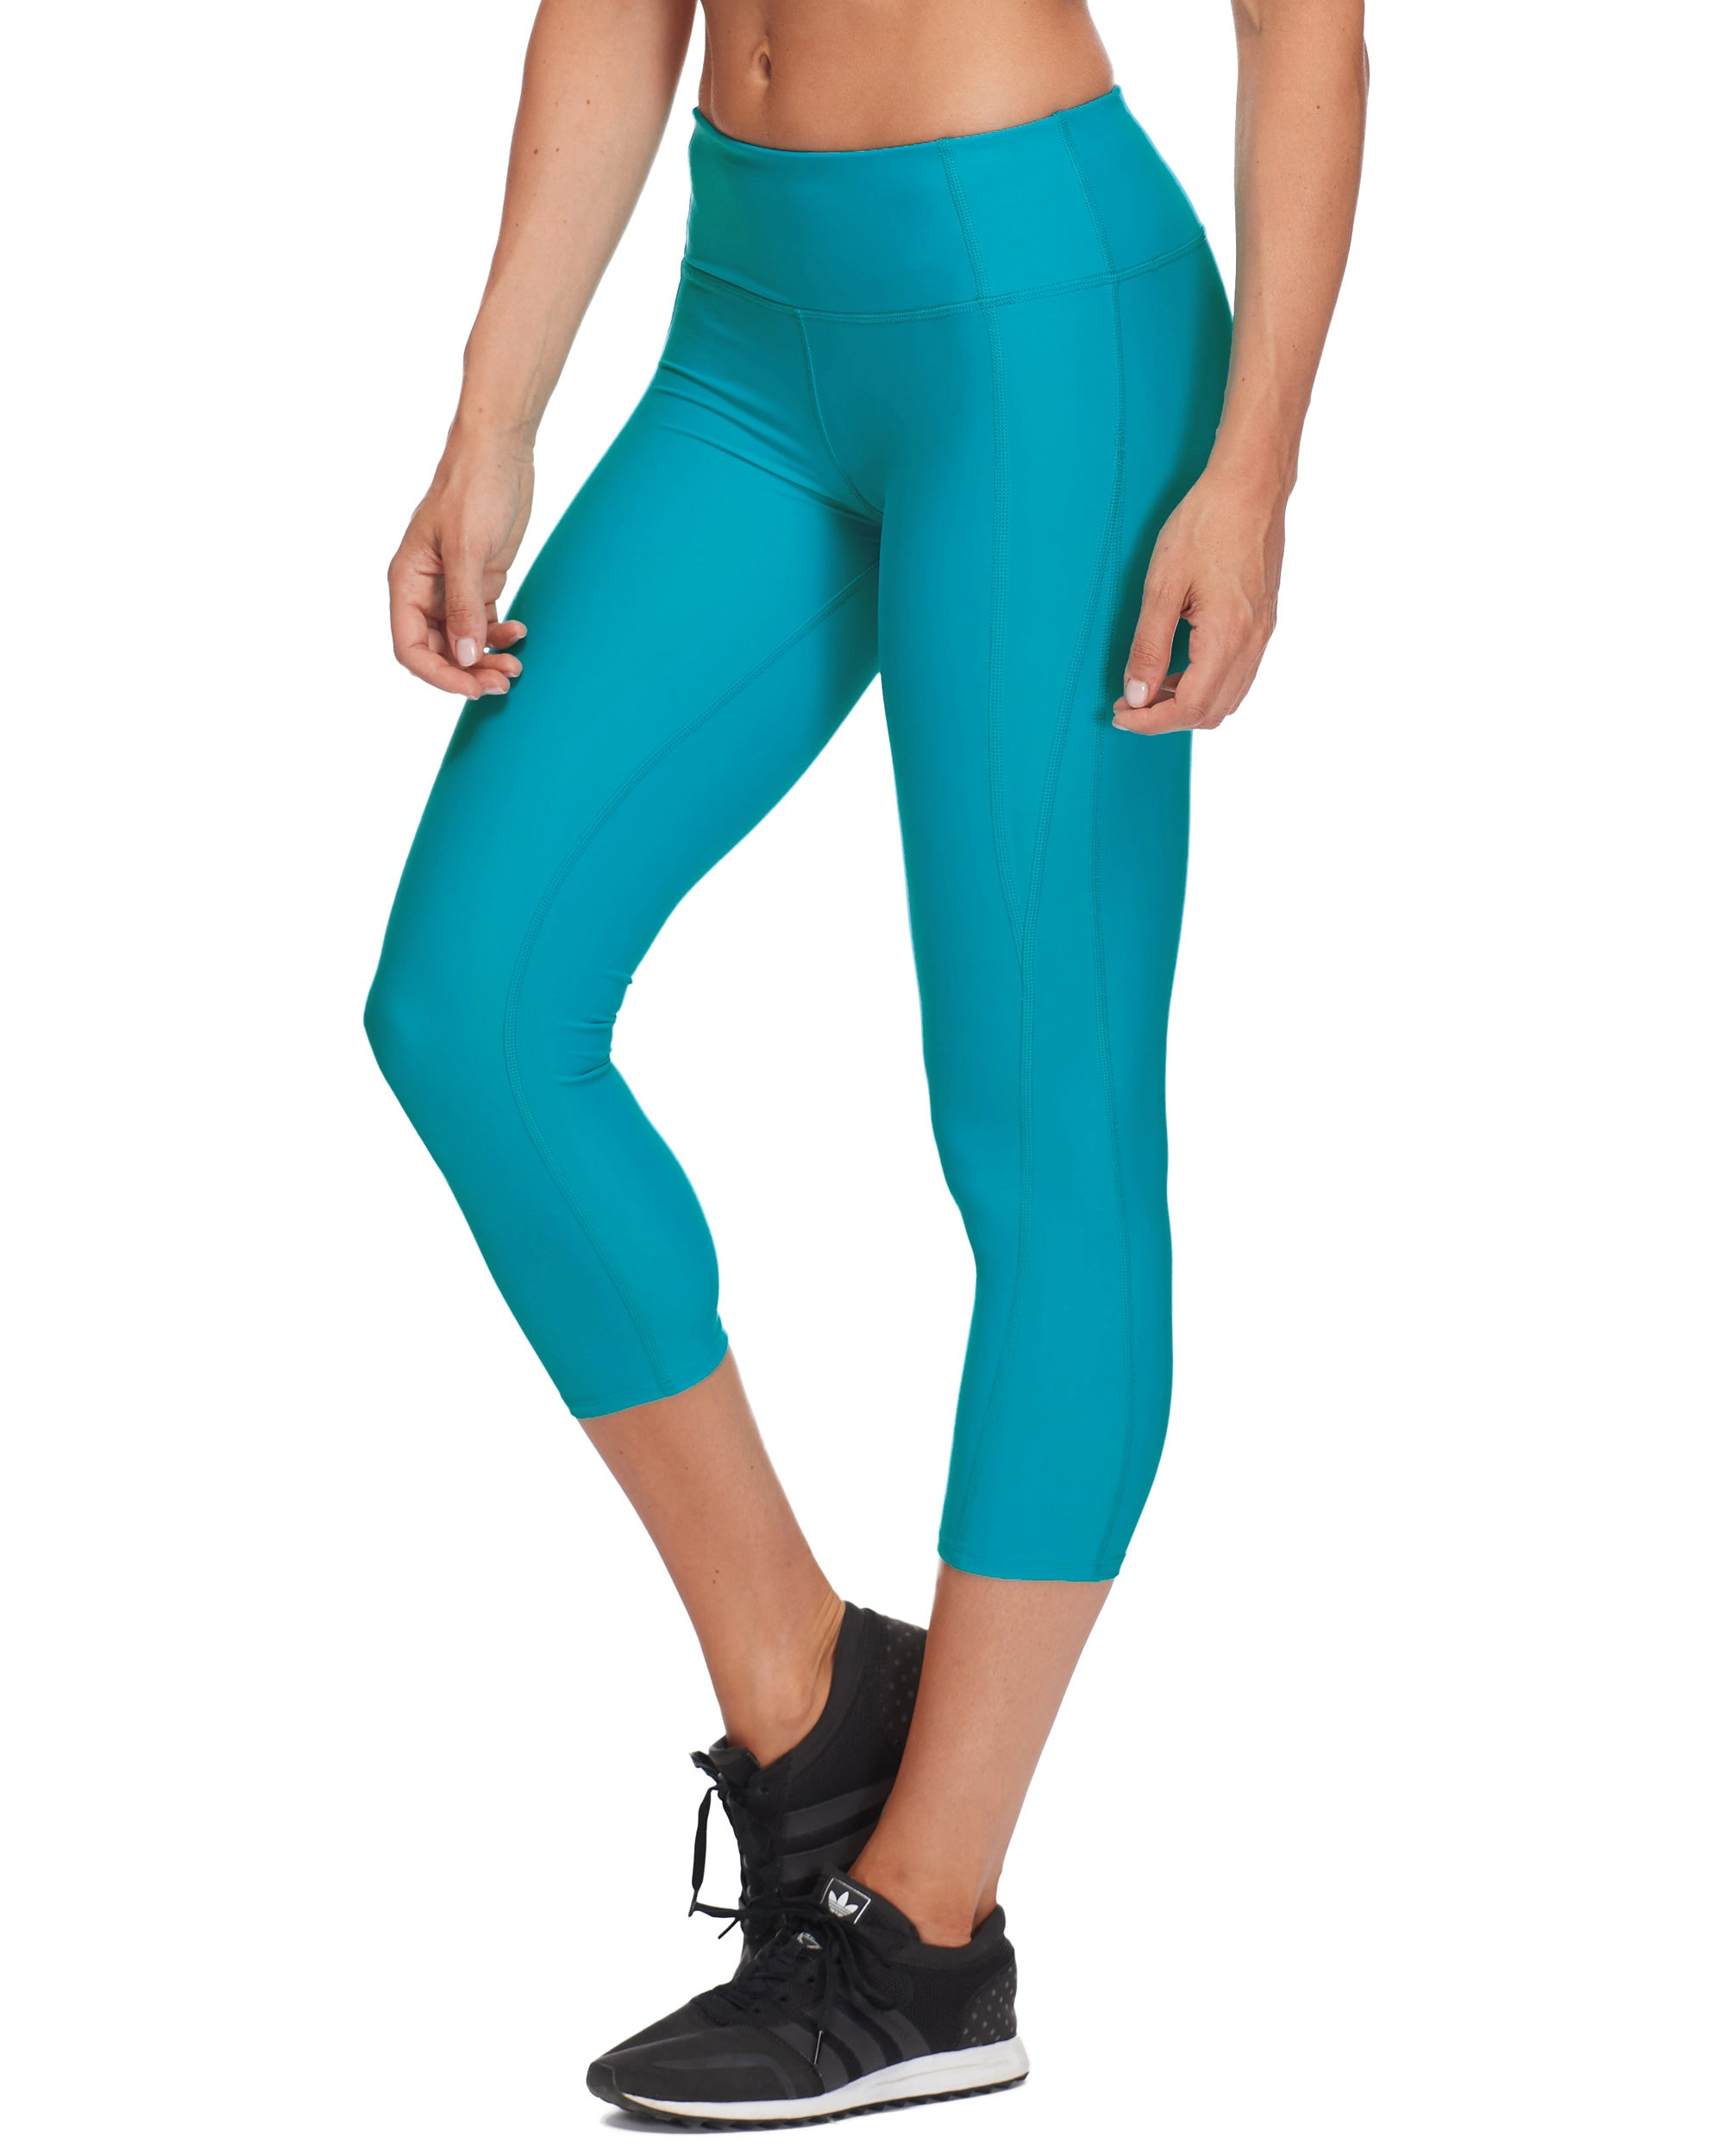 Roam Cross-Over Capri Legging - Peacock